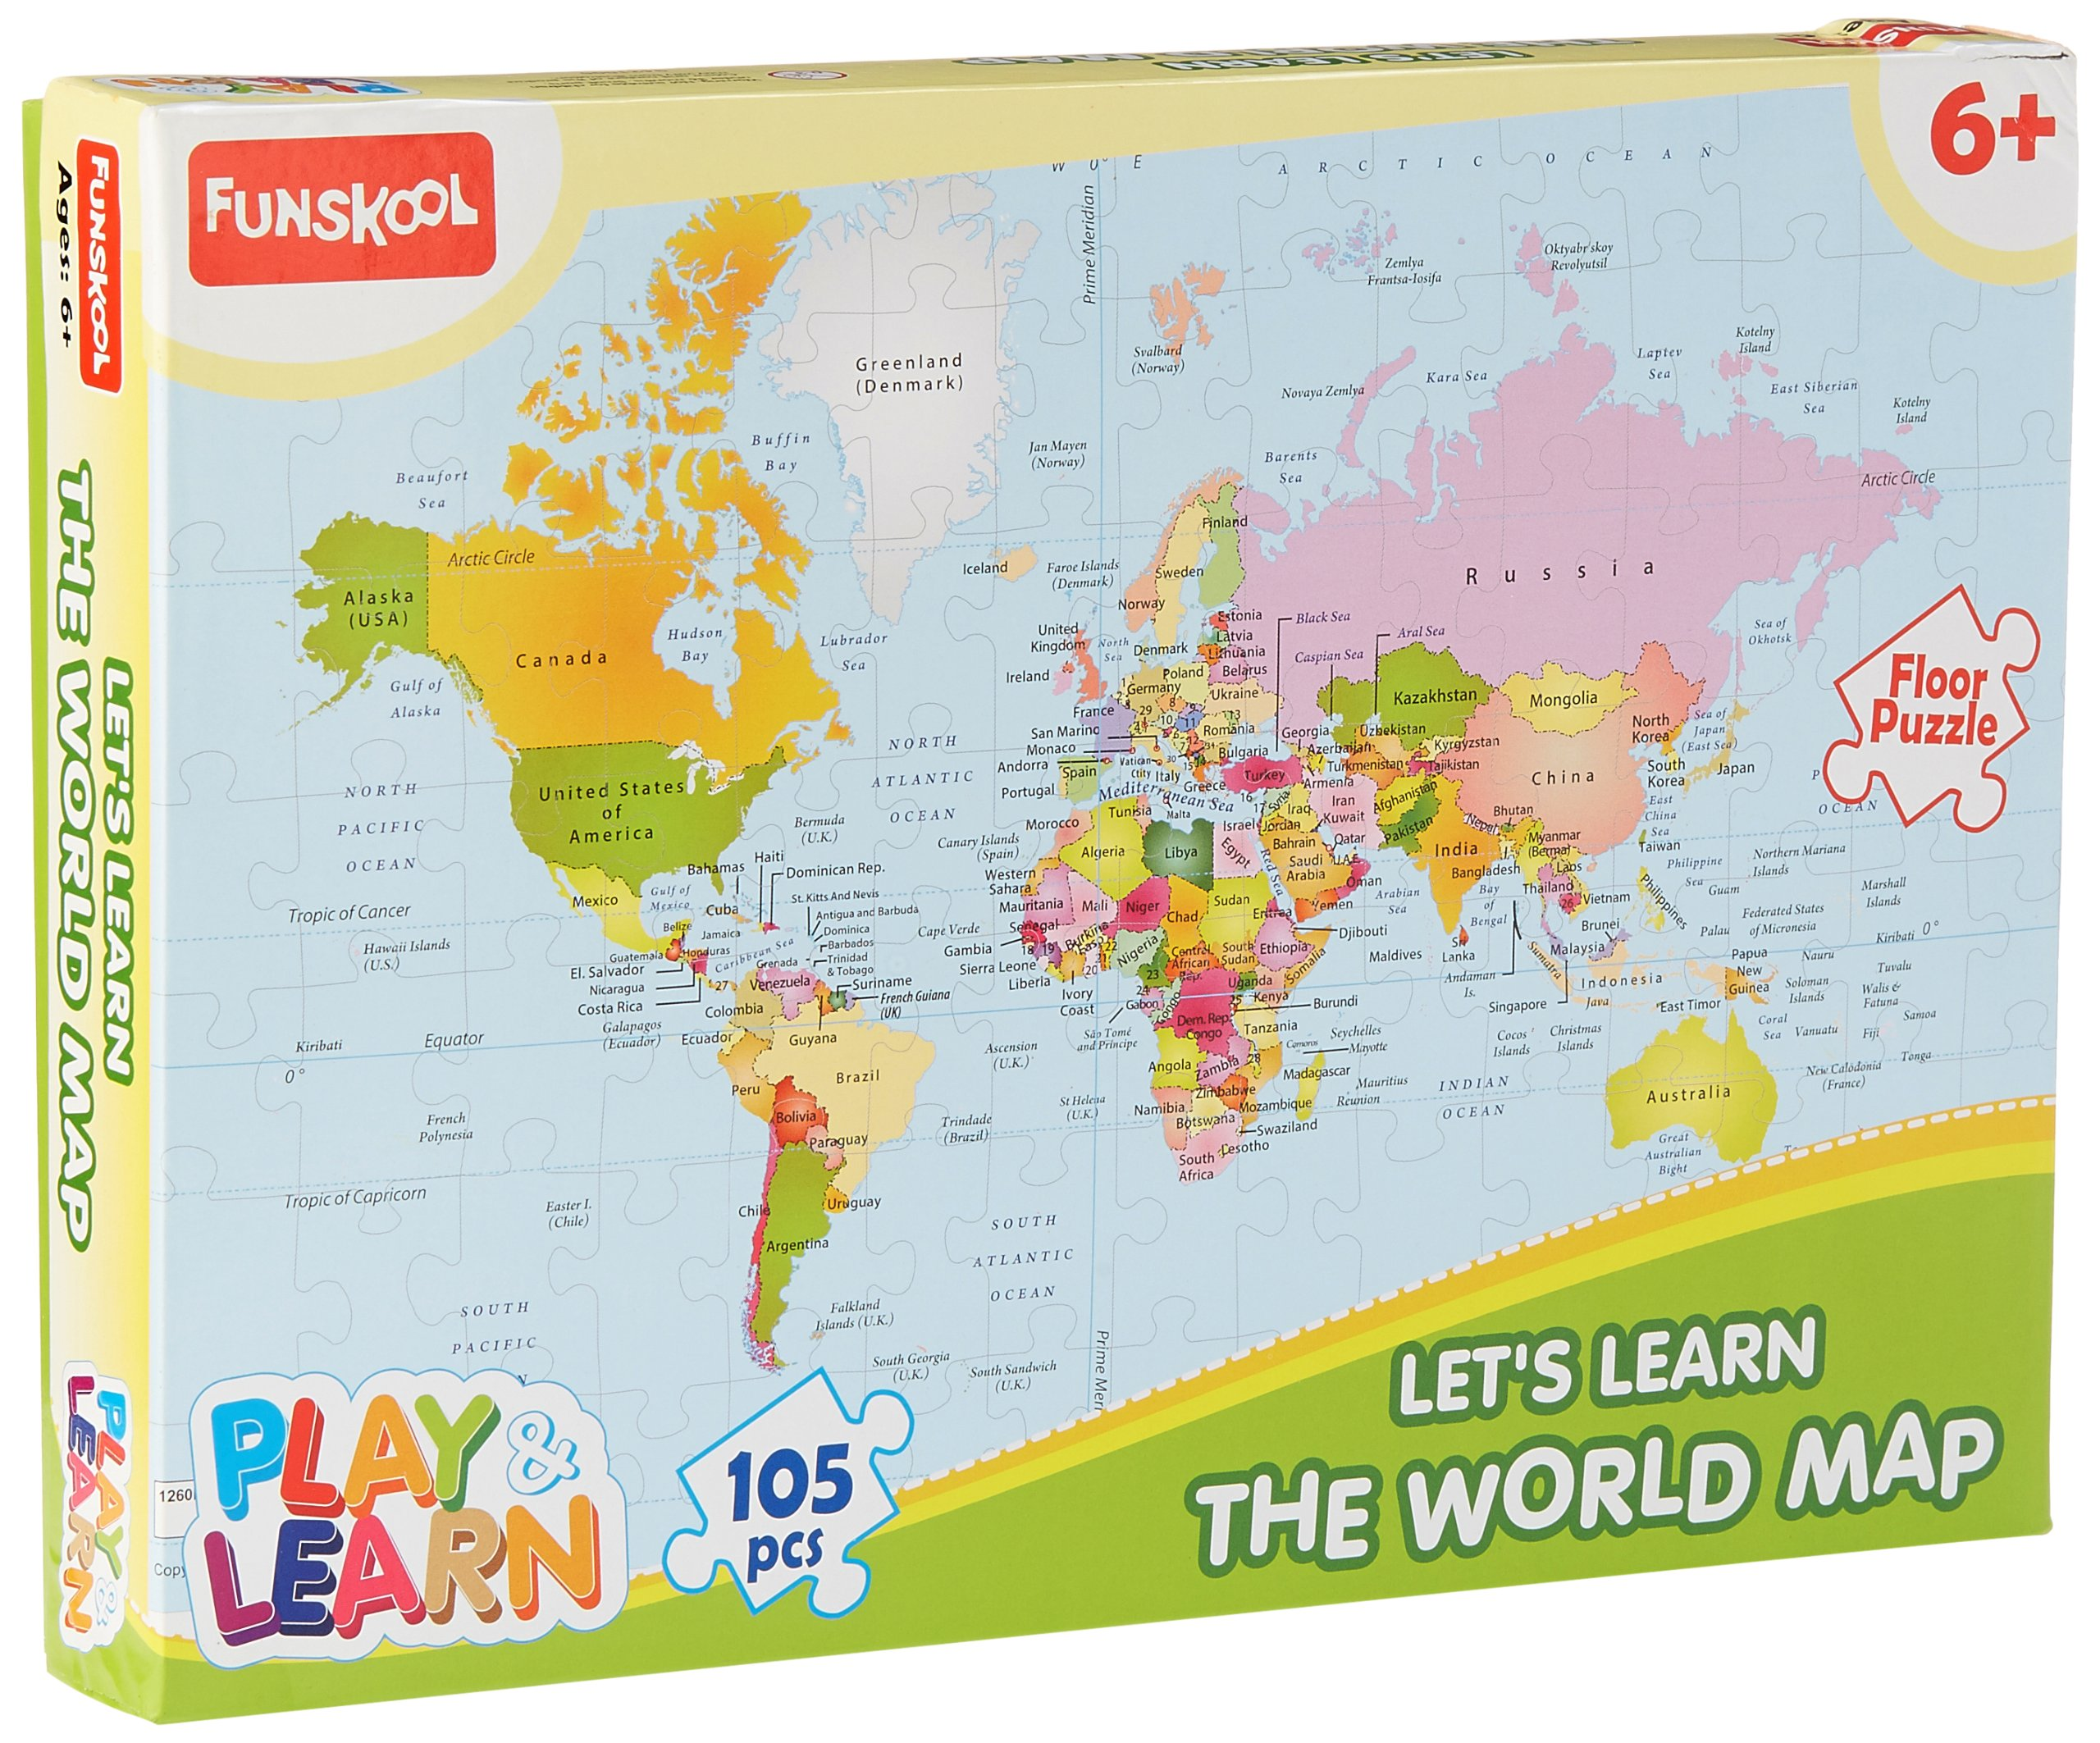 Funskool-Play & Learn World Map Puzzles product image